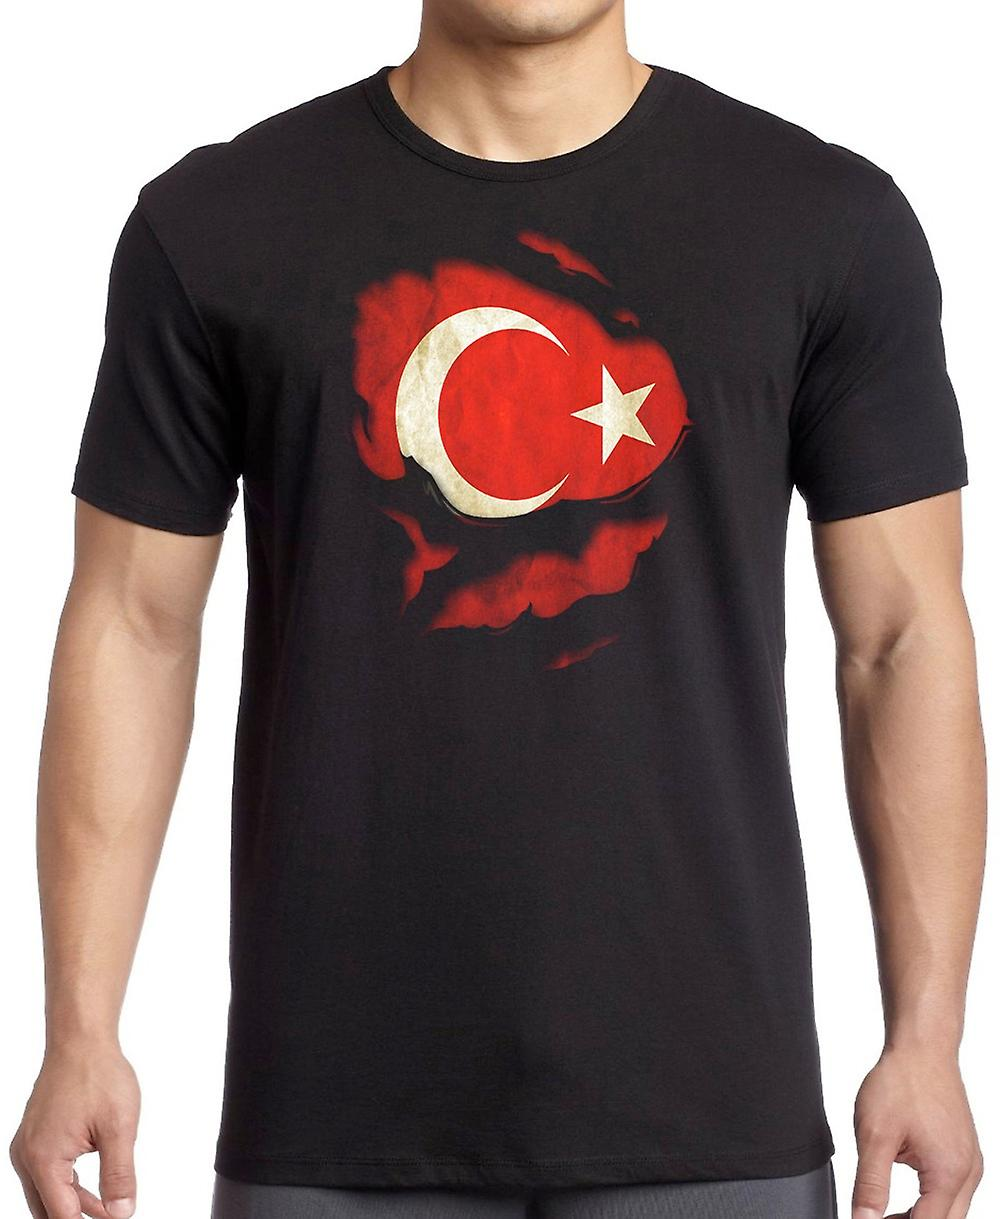 Turkey Ripped Effect Under Shirt Women T Shirt